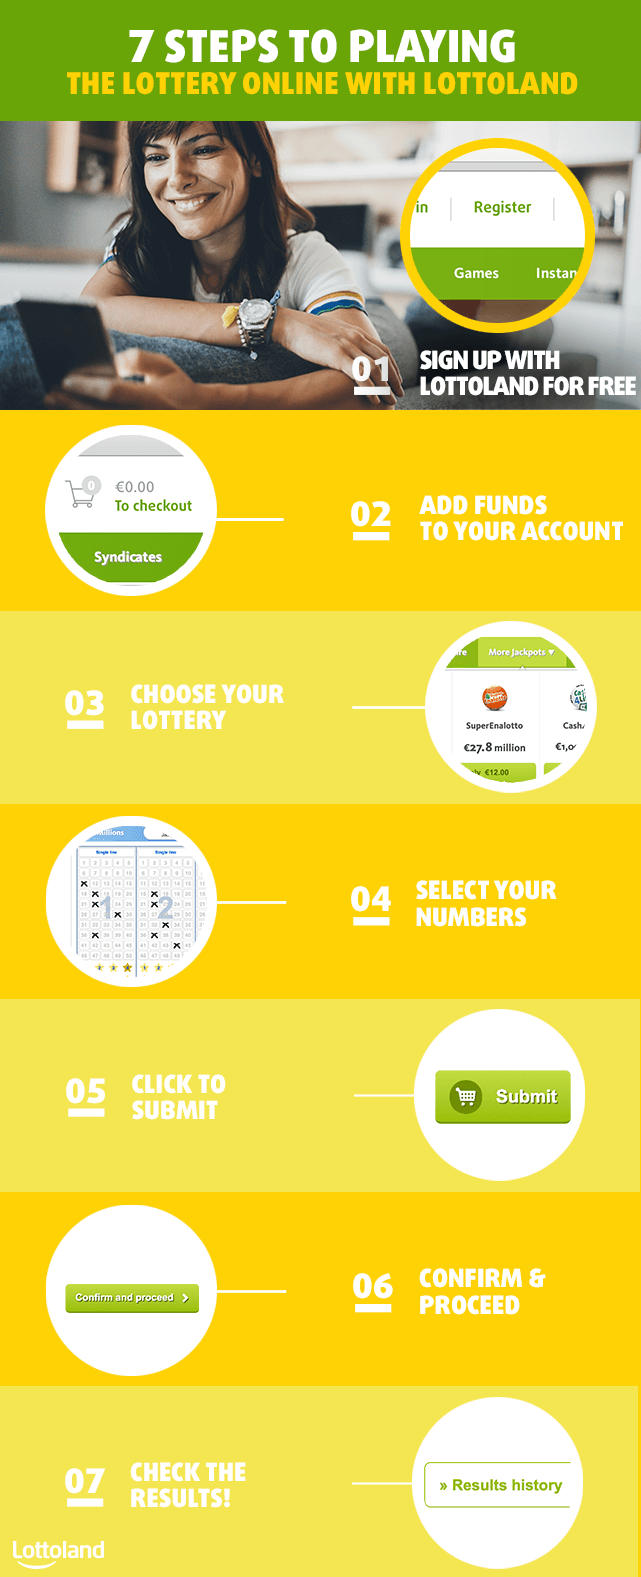 7 steps to playing the lottery online with Lottoland from Ireland